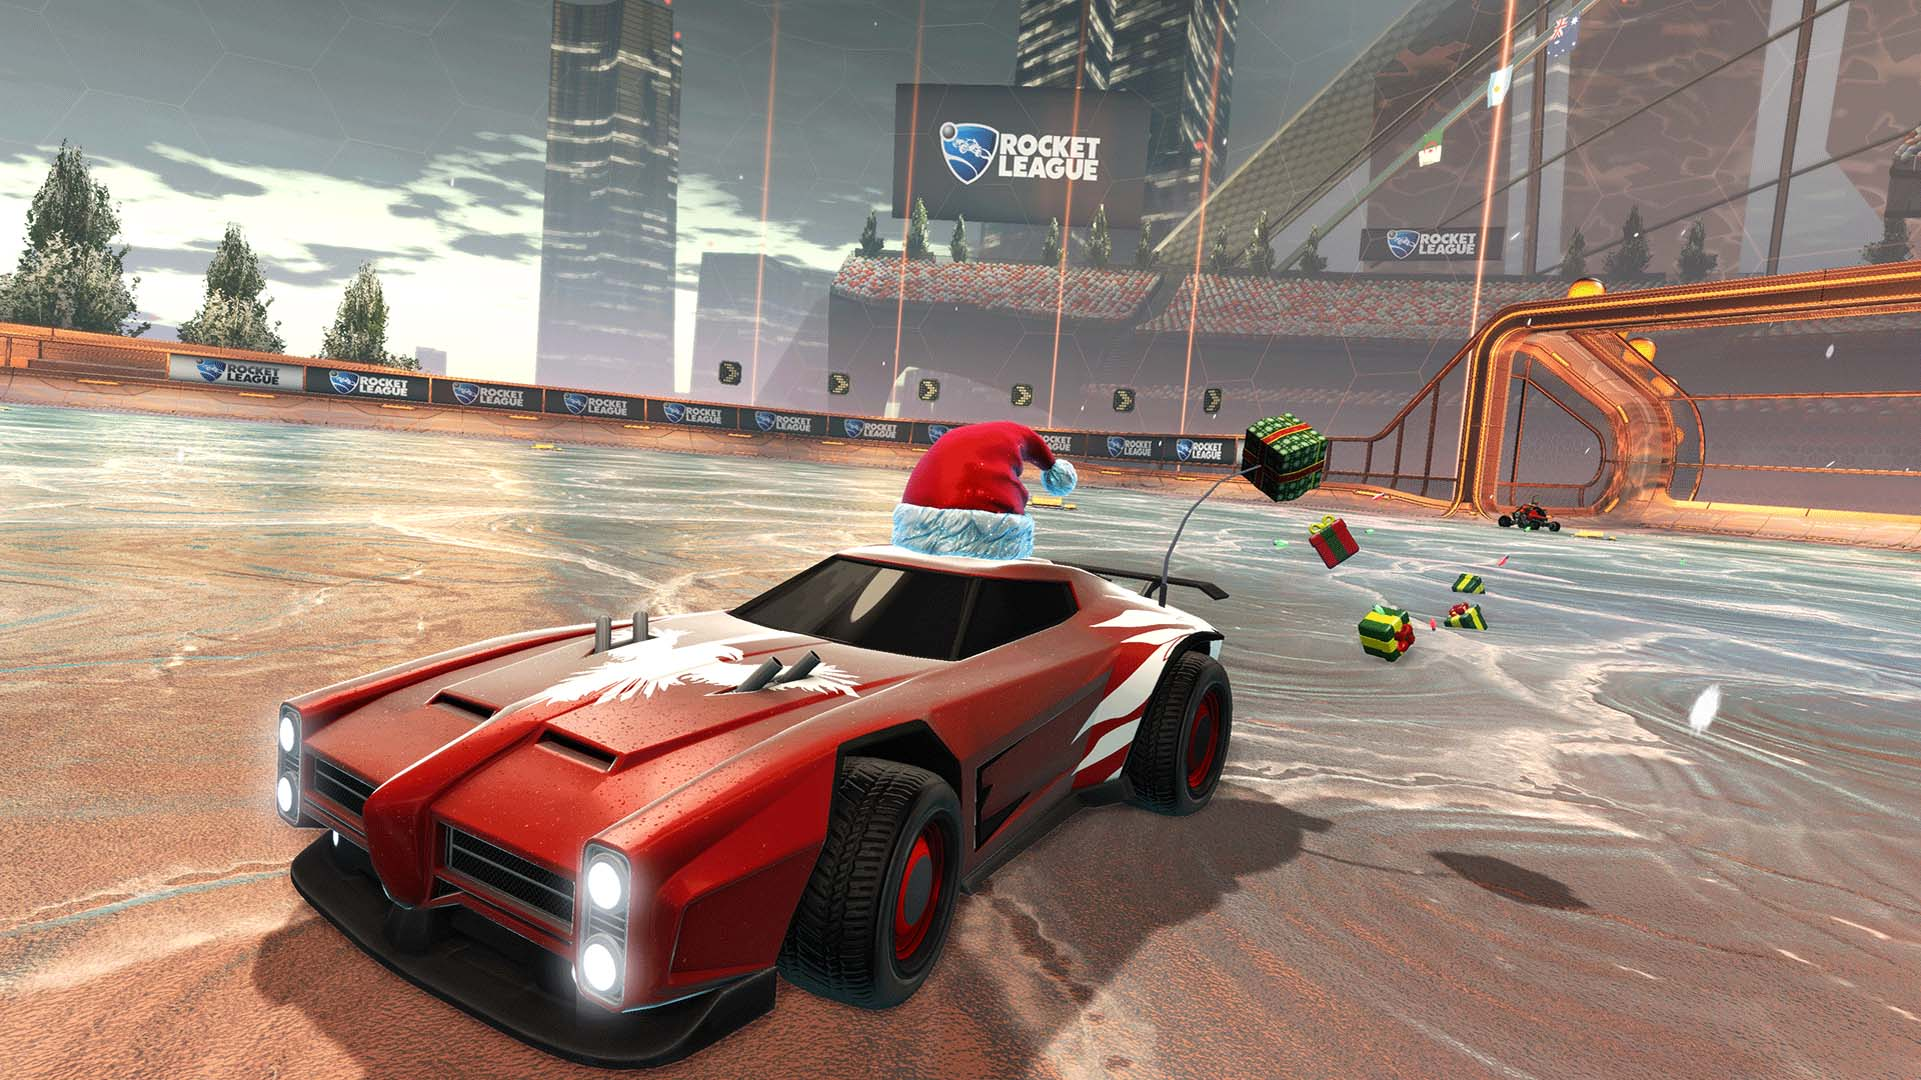 Rocketleague Garage Rocket League To Get Free Winter Gifts Pissed Off Geek